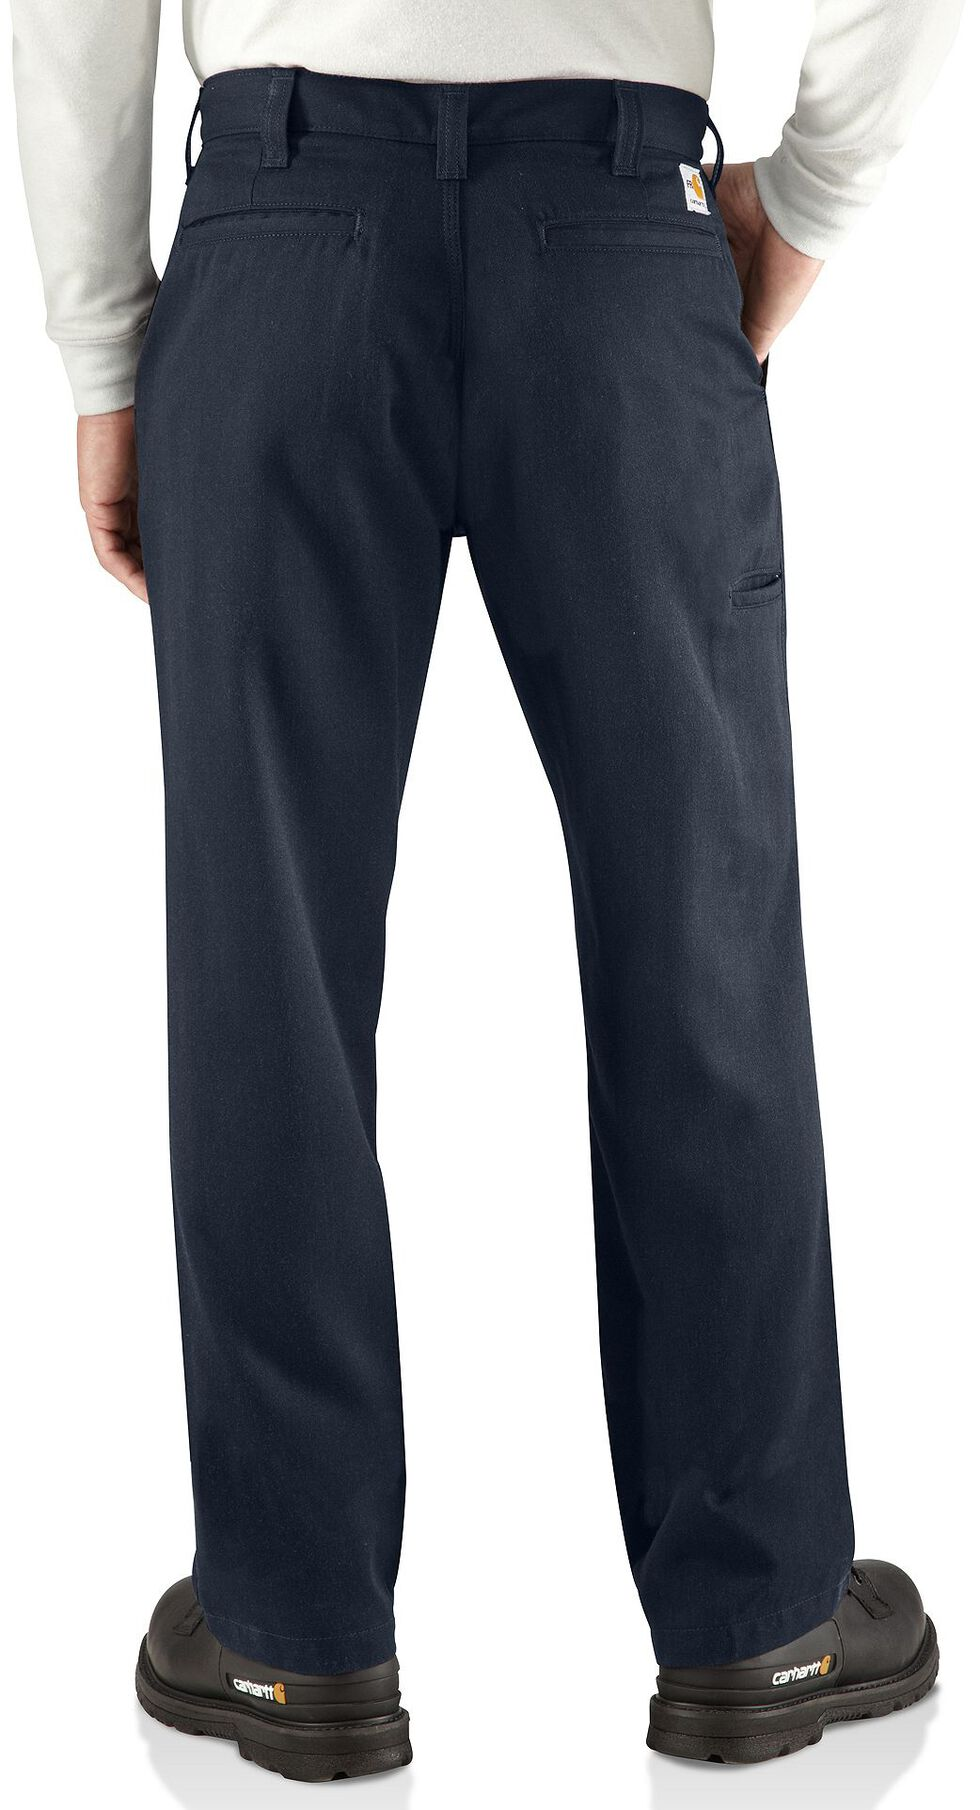 Carhartt Flame Resistant Work Pants - Big & Tall, Navy, hi-res